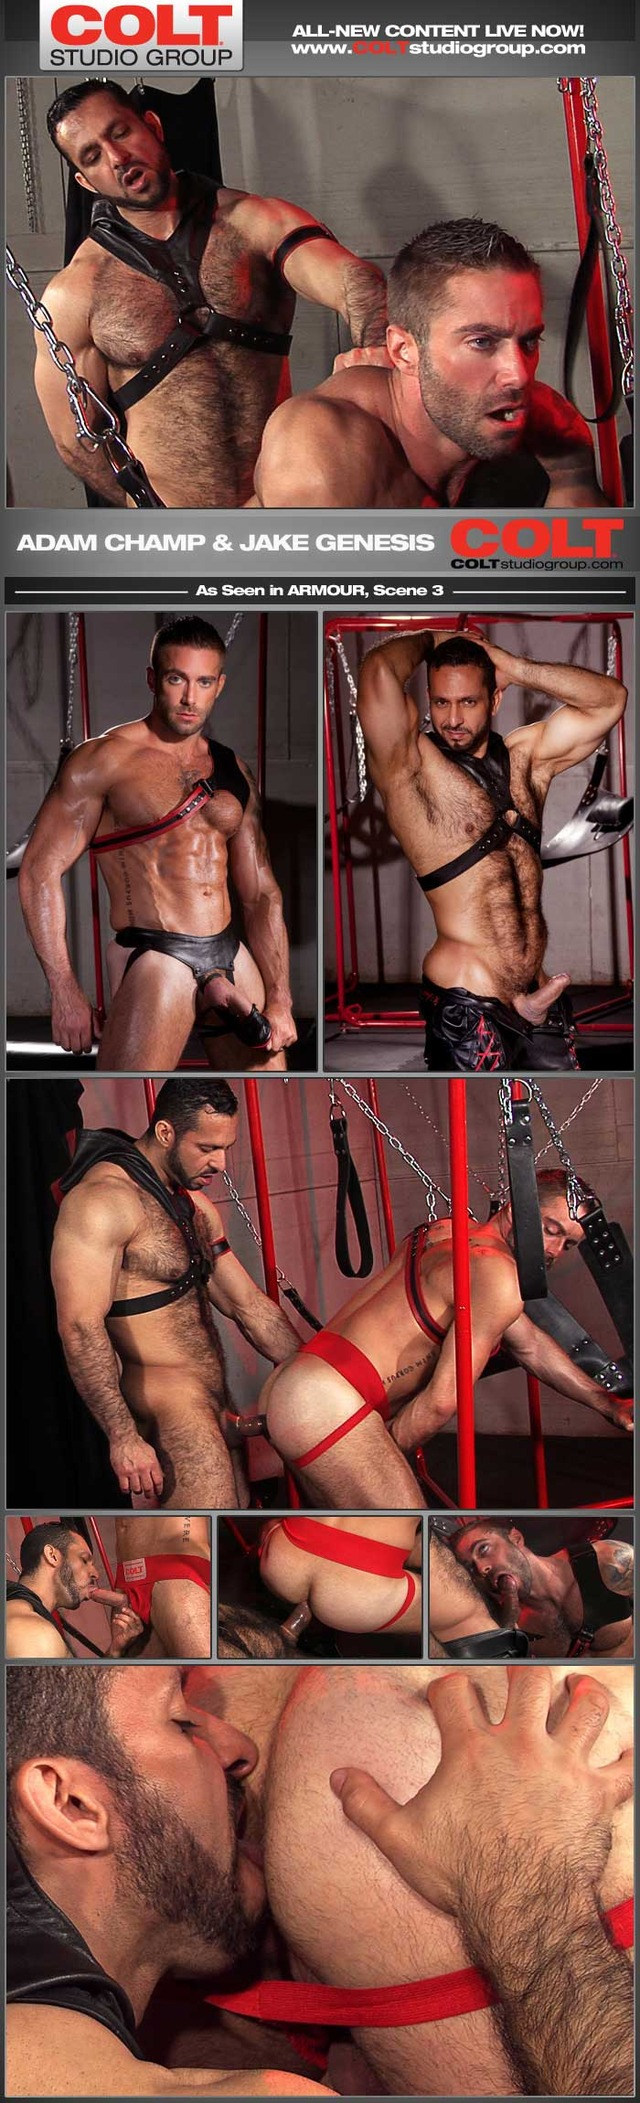 big guy gay porn adam champ jake genesis armour porn men gay leather strong pants